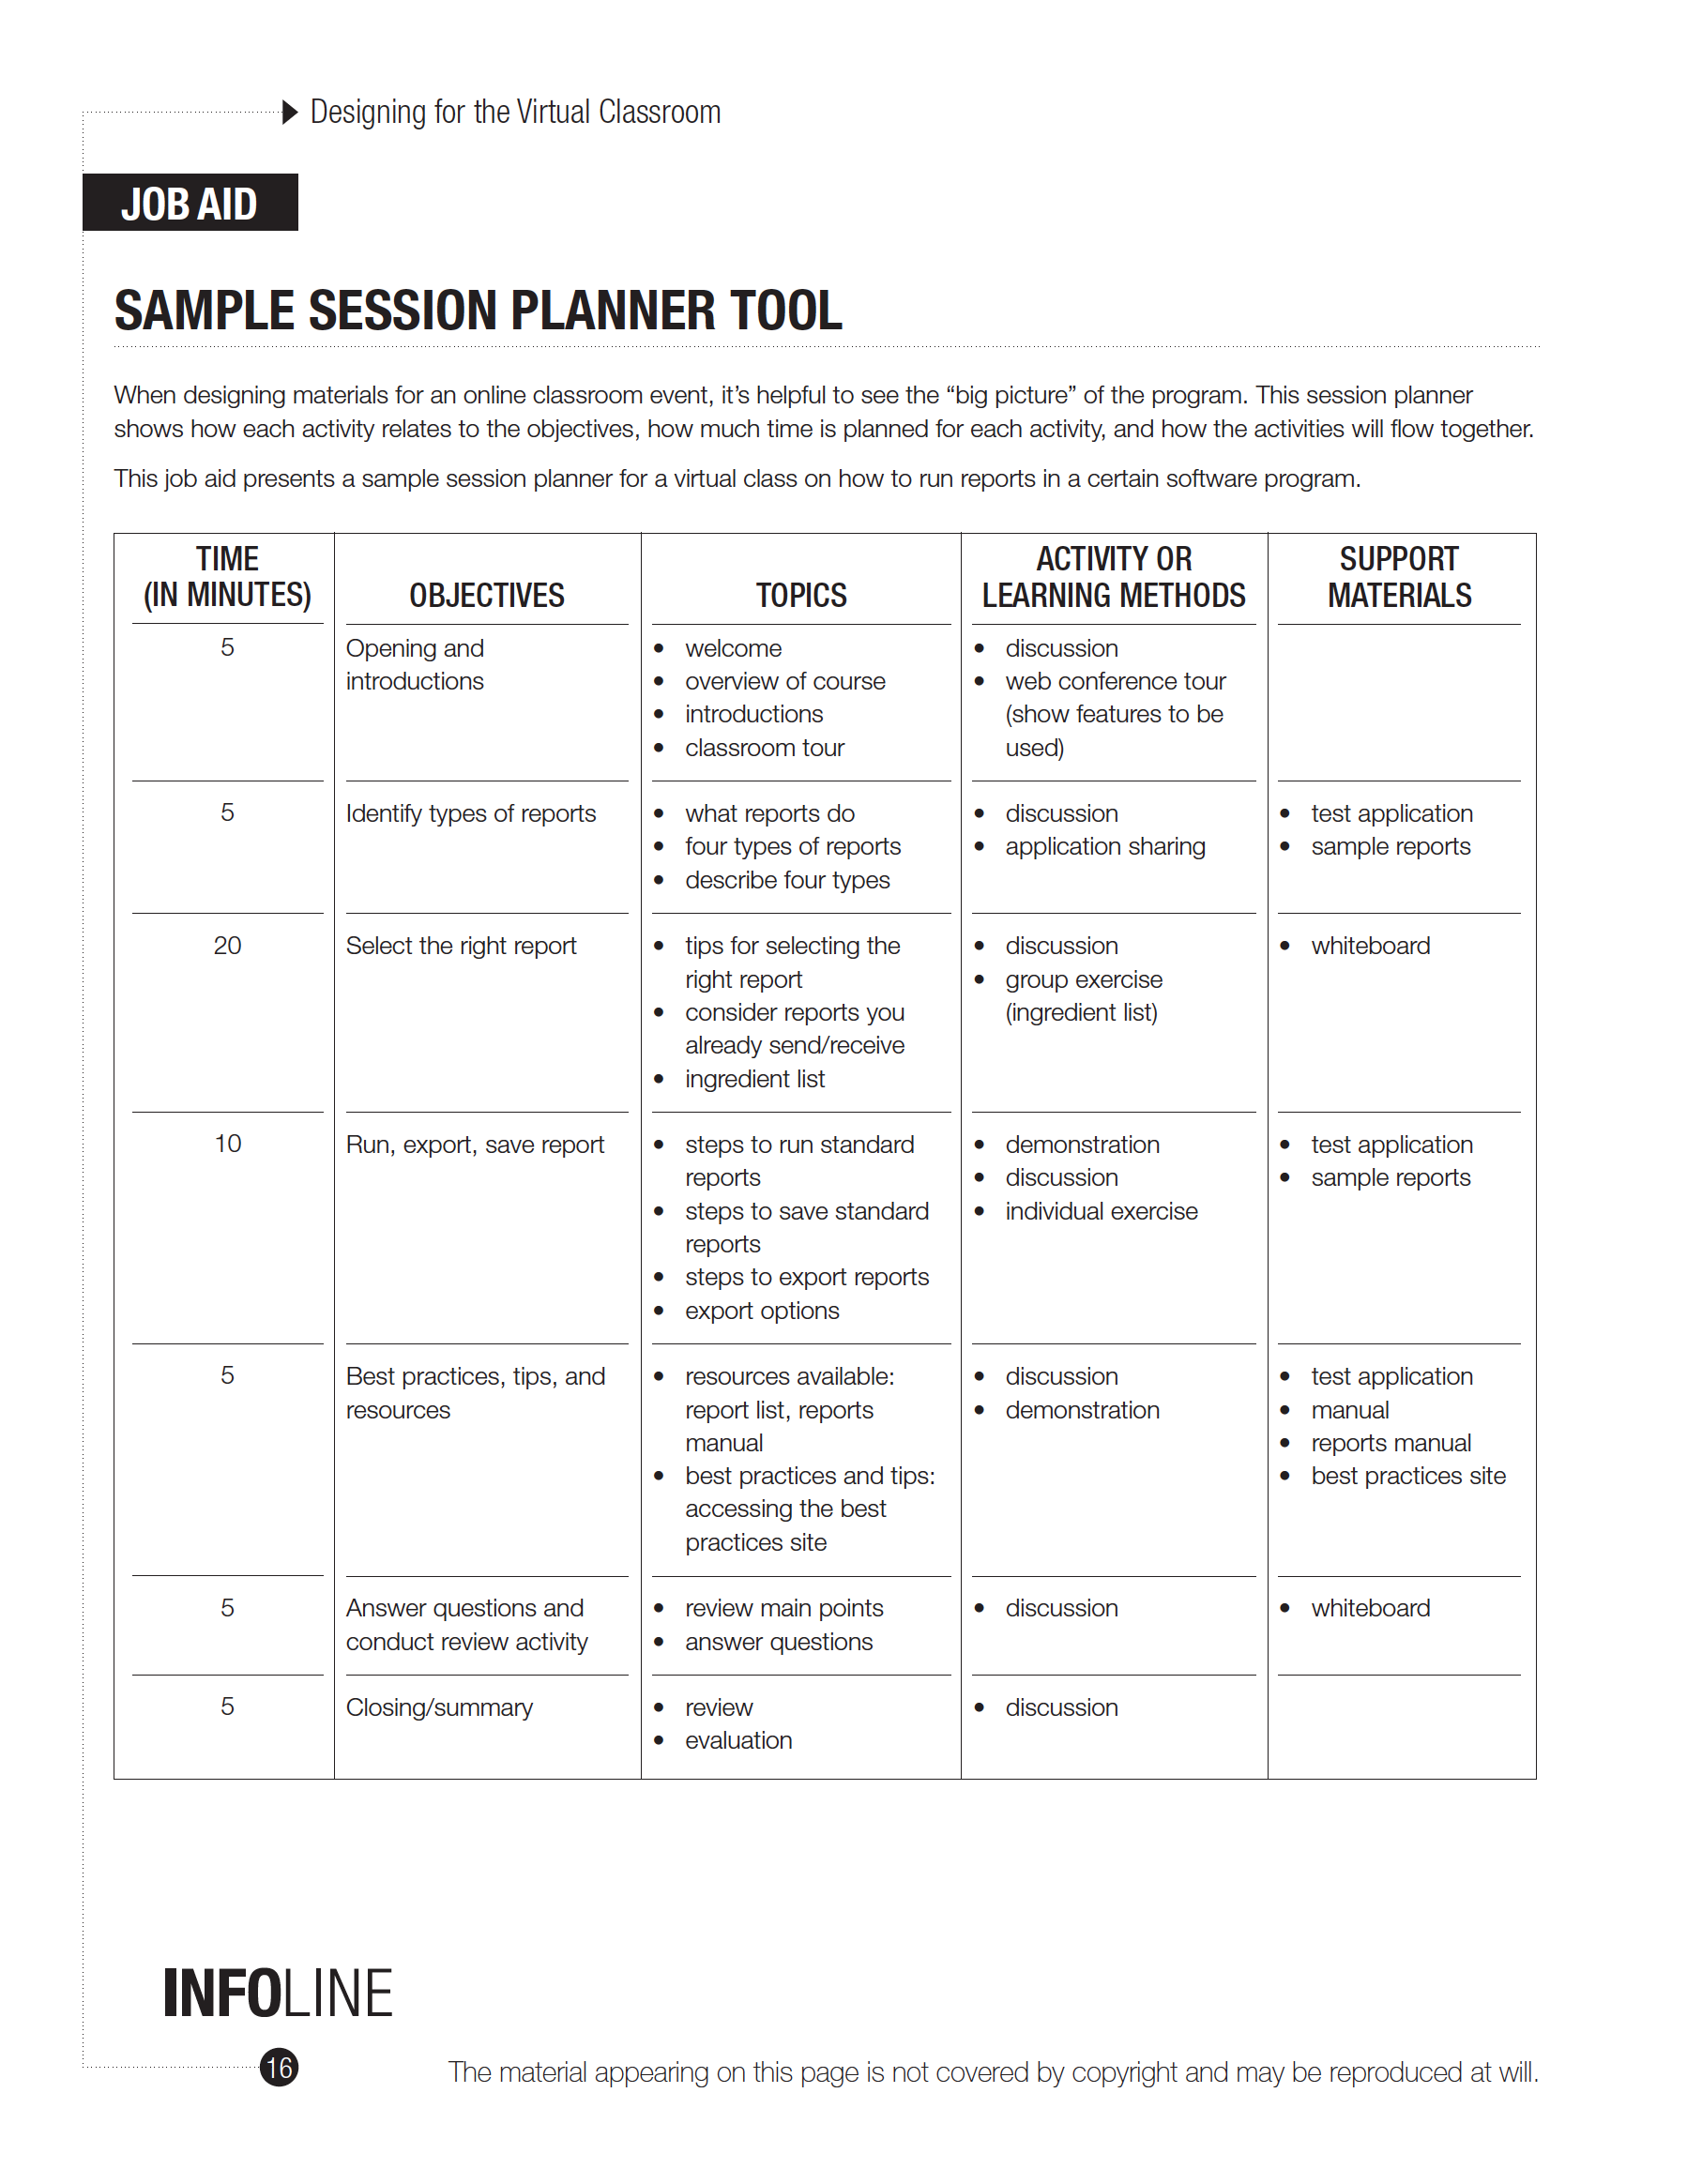 checklists templates archives cindy huggett rh cindyhuggett com Training Participant Guide Sample Participant Guide Style Booklets